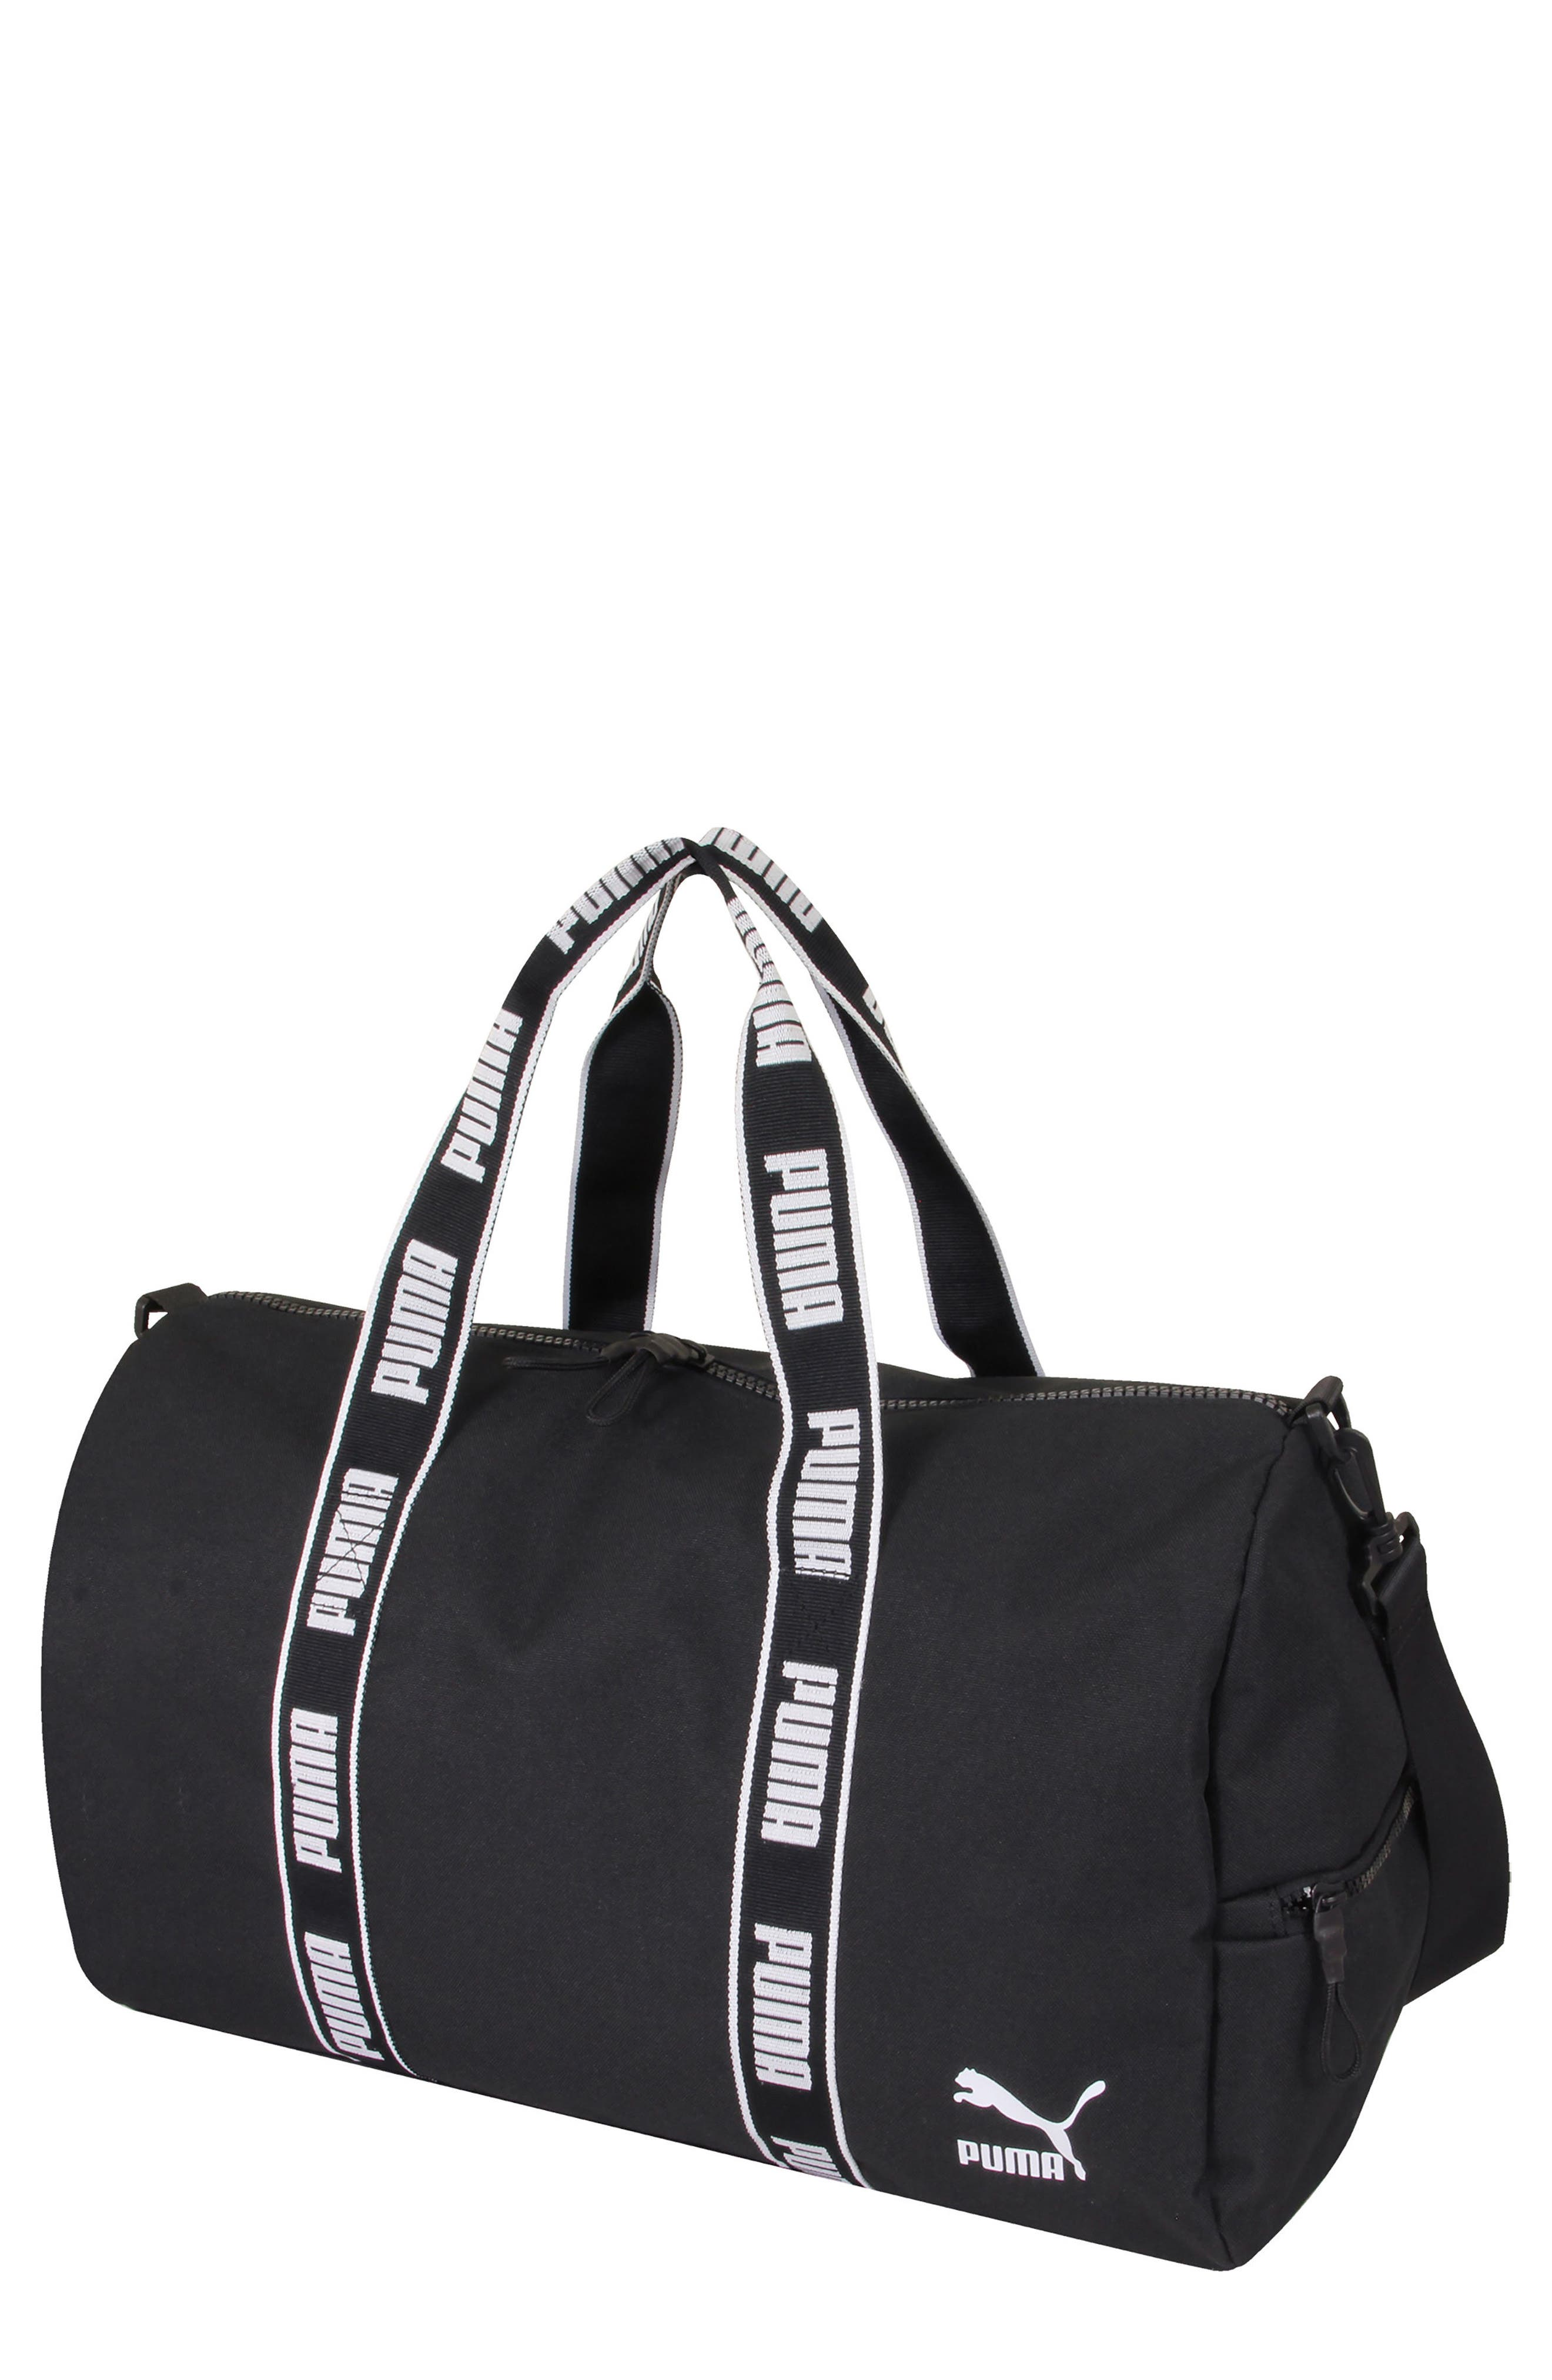 PUMA Conveyor Duffel Bag